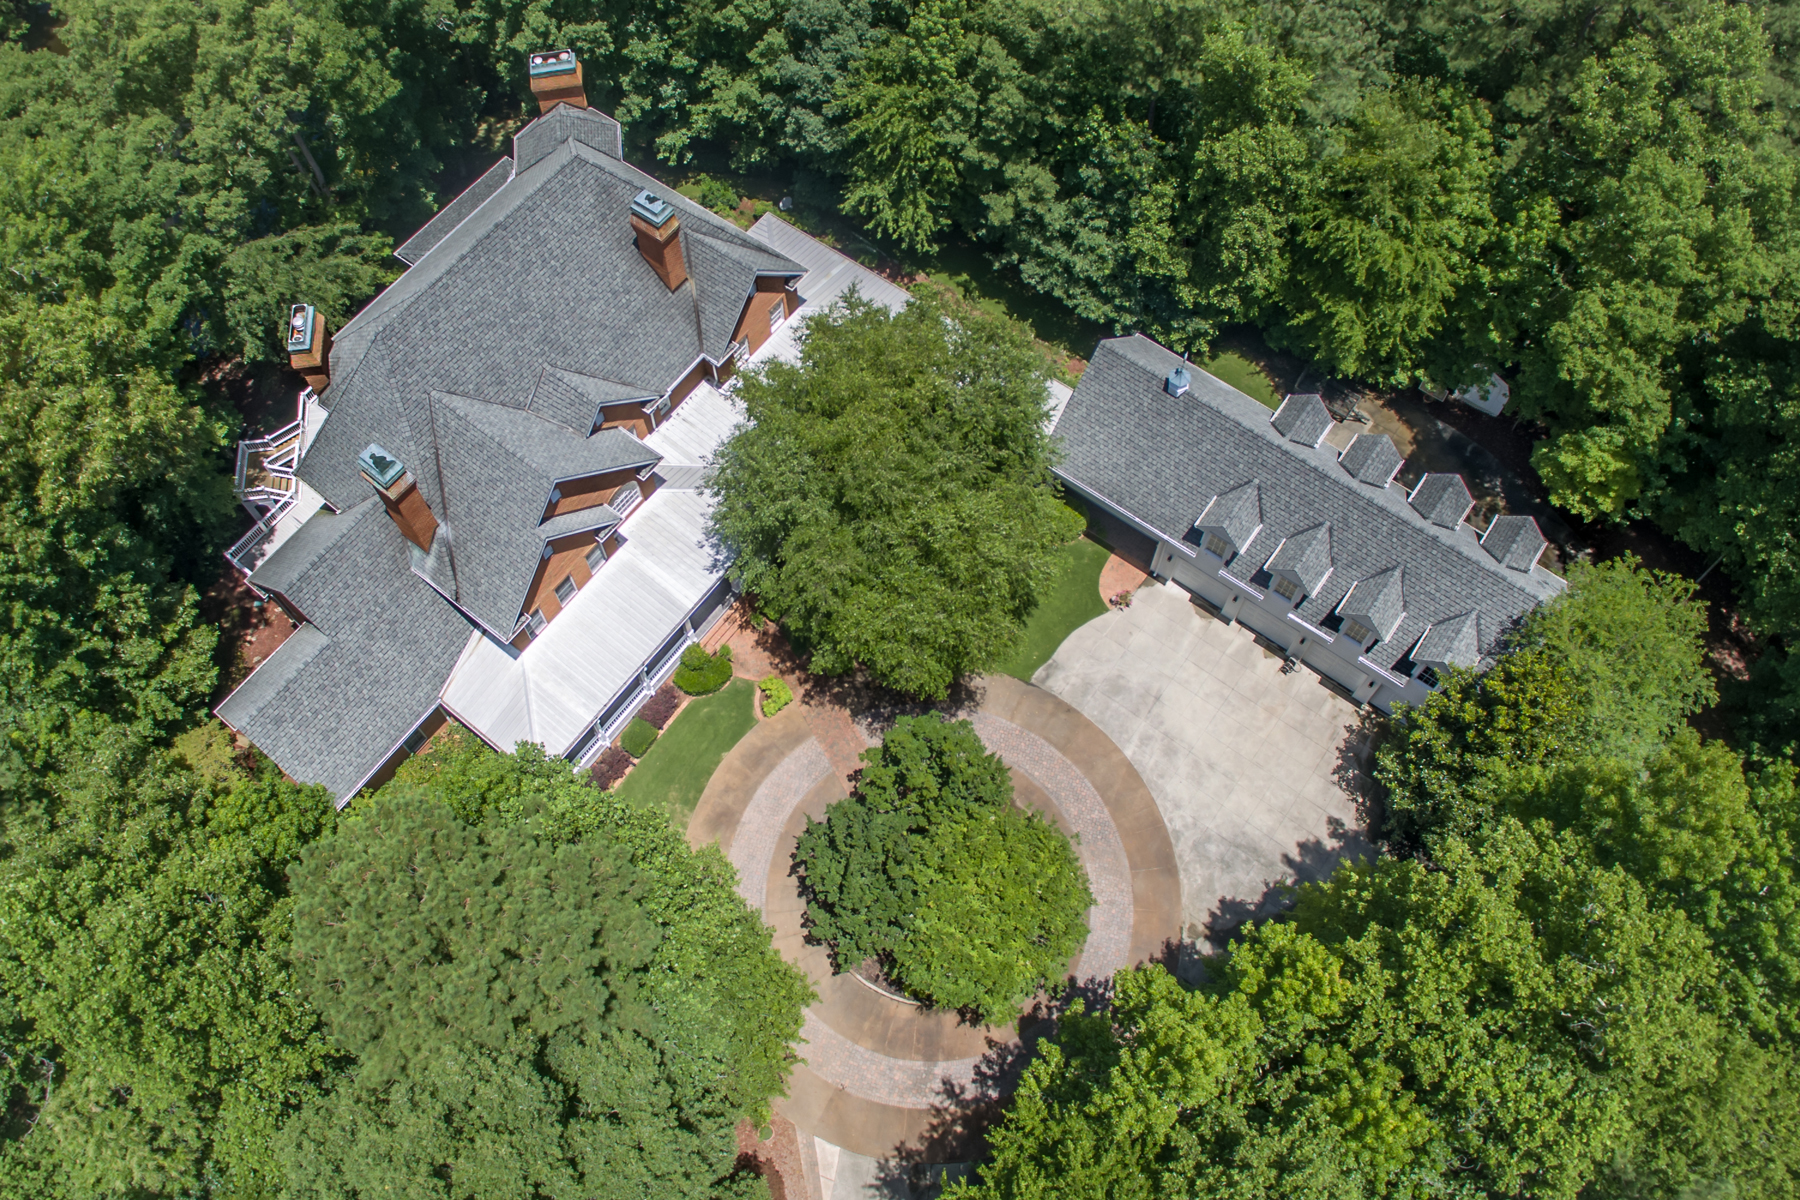 Single Family Home for Active at Magnificent Gated Estate 1836 County Line Road NW Acworth, Georgia 30101 United States